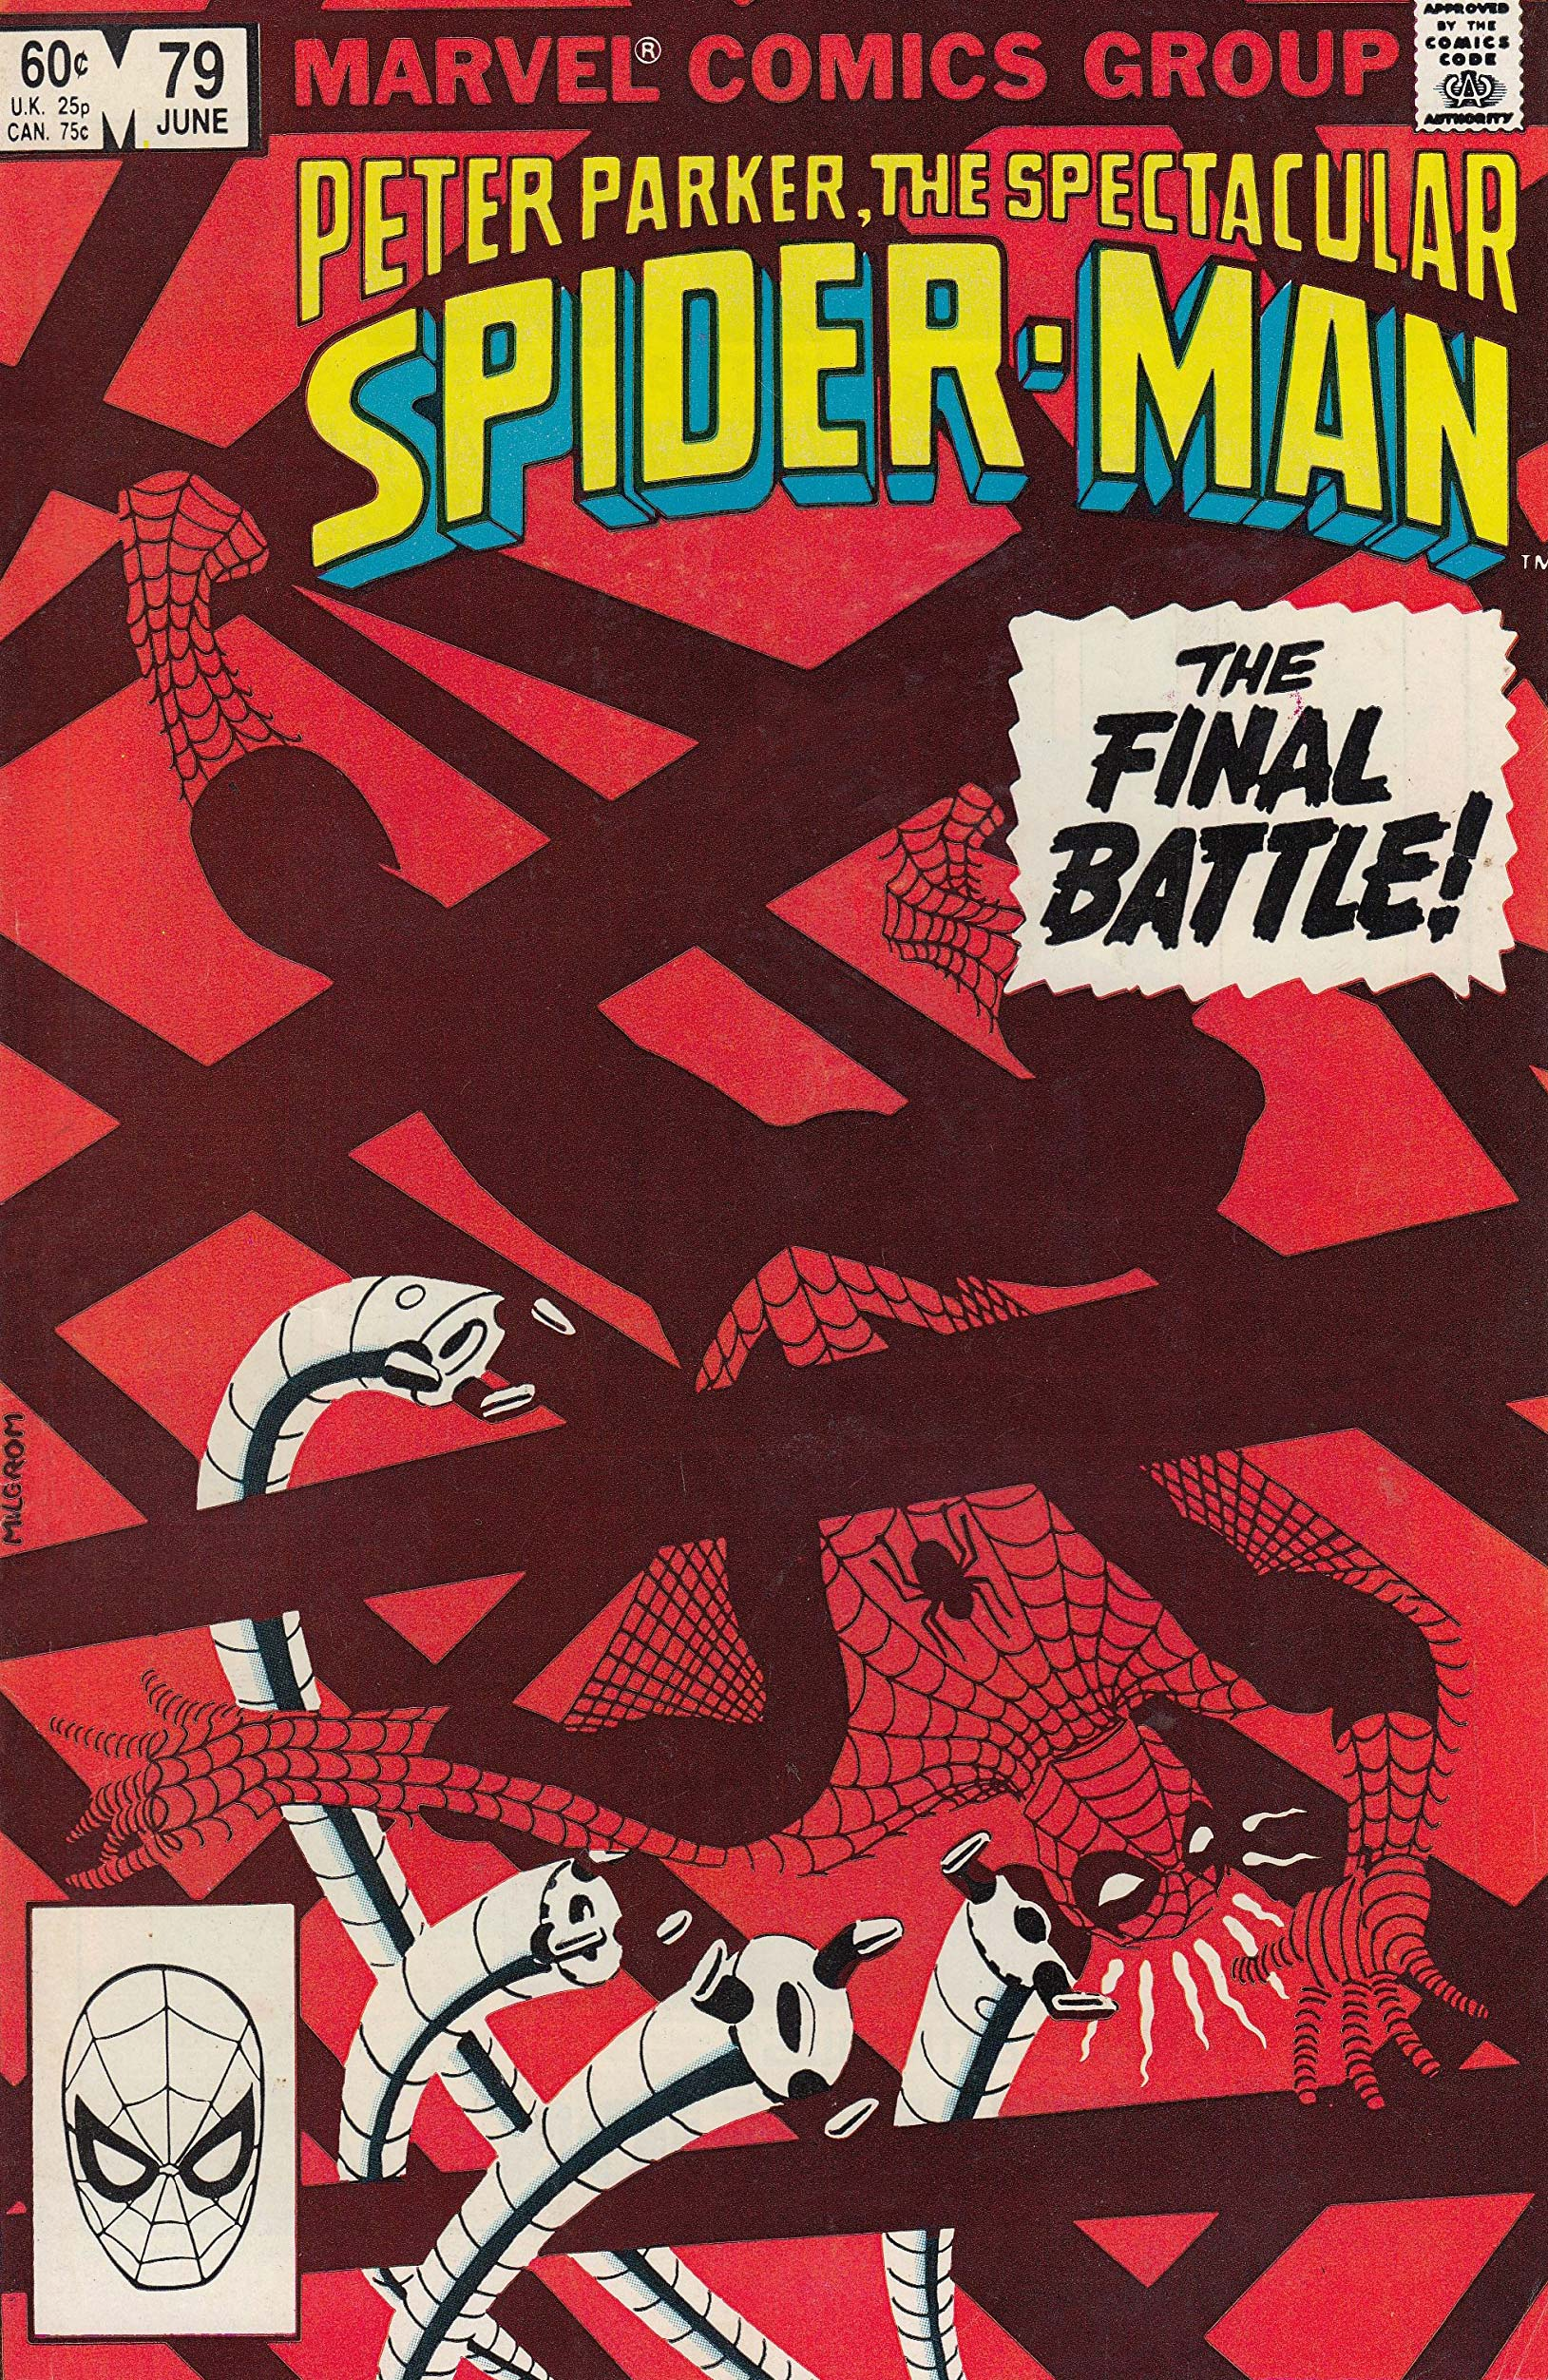 Peter Parker, the Spectacular Spider-Man (1976) #79